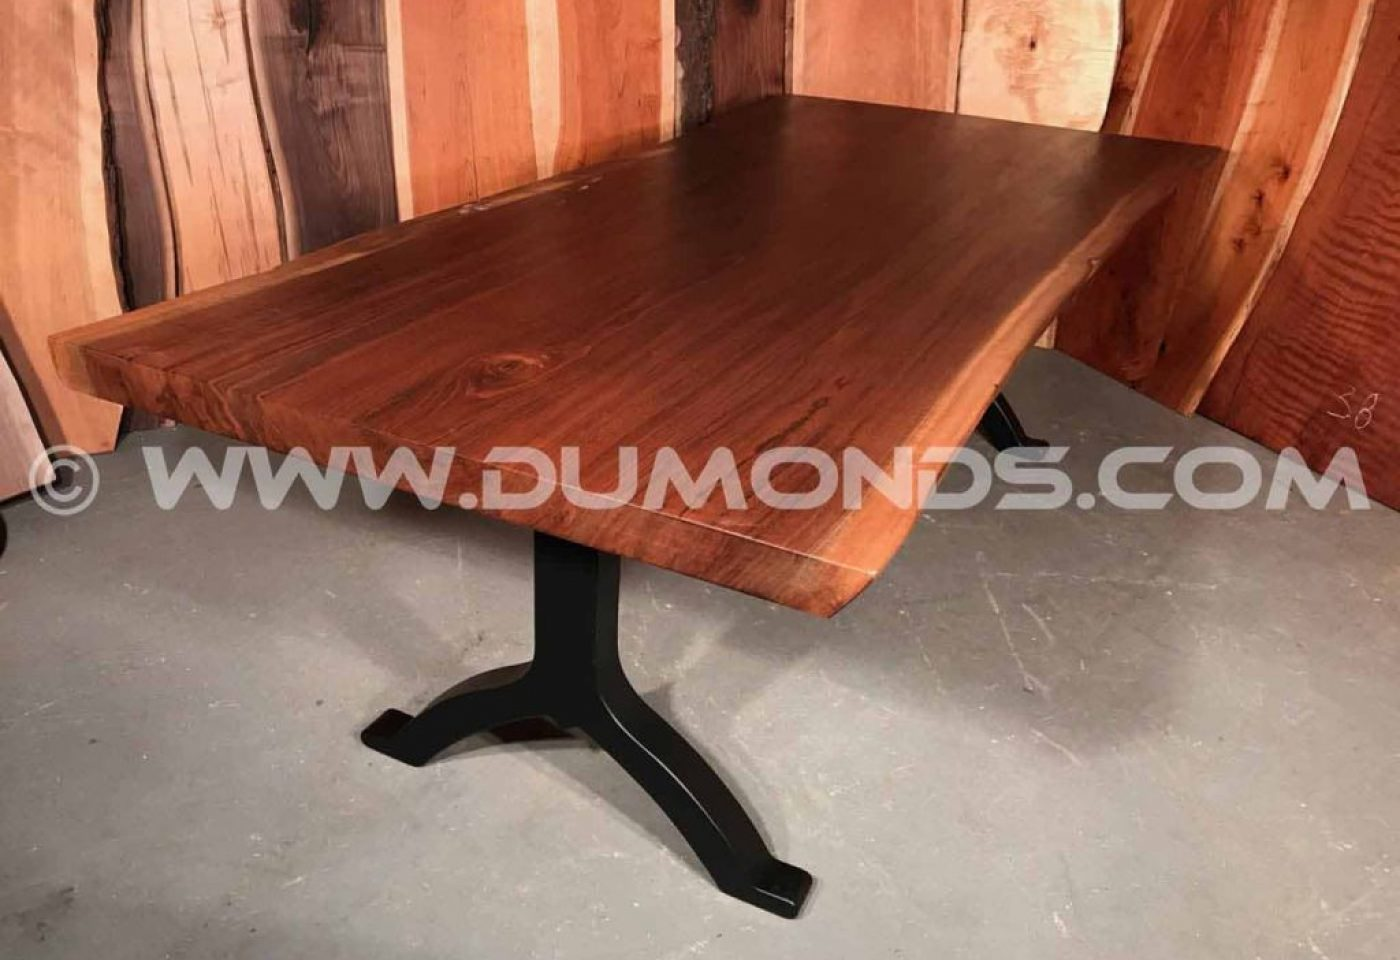 OREGON CLARO WALNUT LIVE EDGE TABLE WITH BLACK ARCHED STEEL LEGS